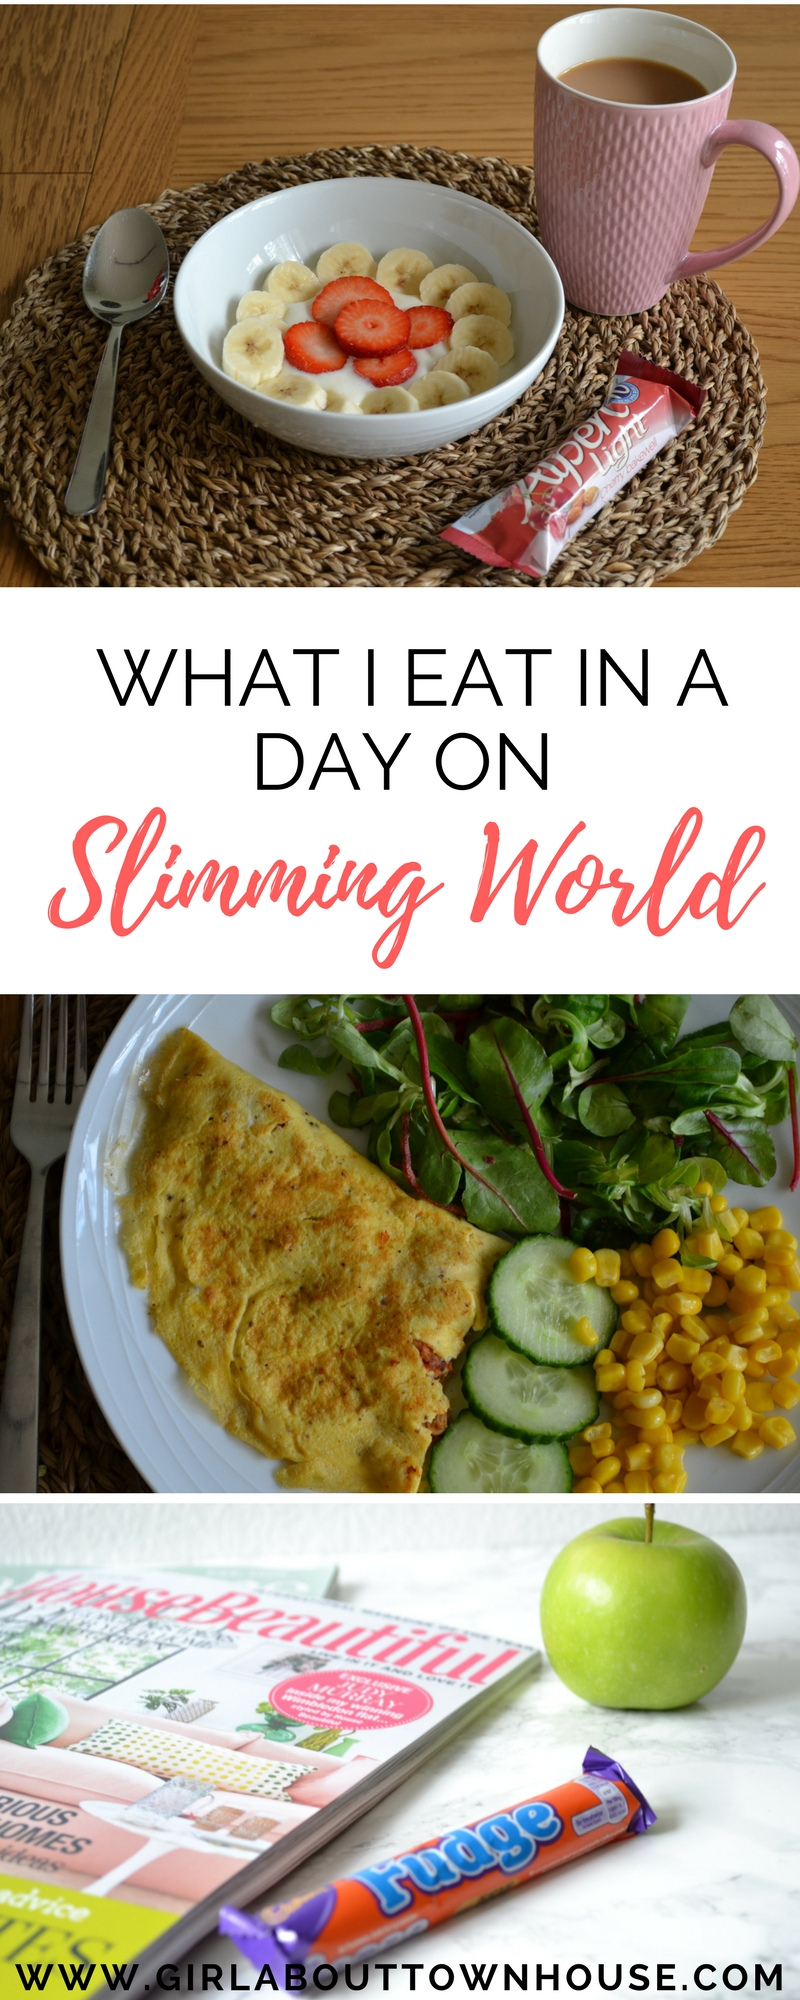 What I eat in a typical day following the Slimming World plan. I'll be giving you a sneak peek into breakfast, lunch and dinner as well as free foods and syns. I'll also be sharing my weight loss tips and slimming resources.